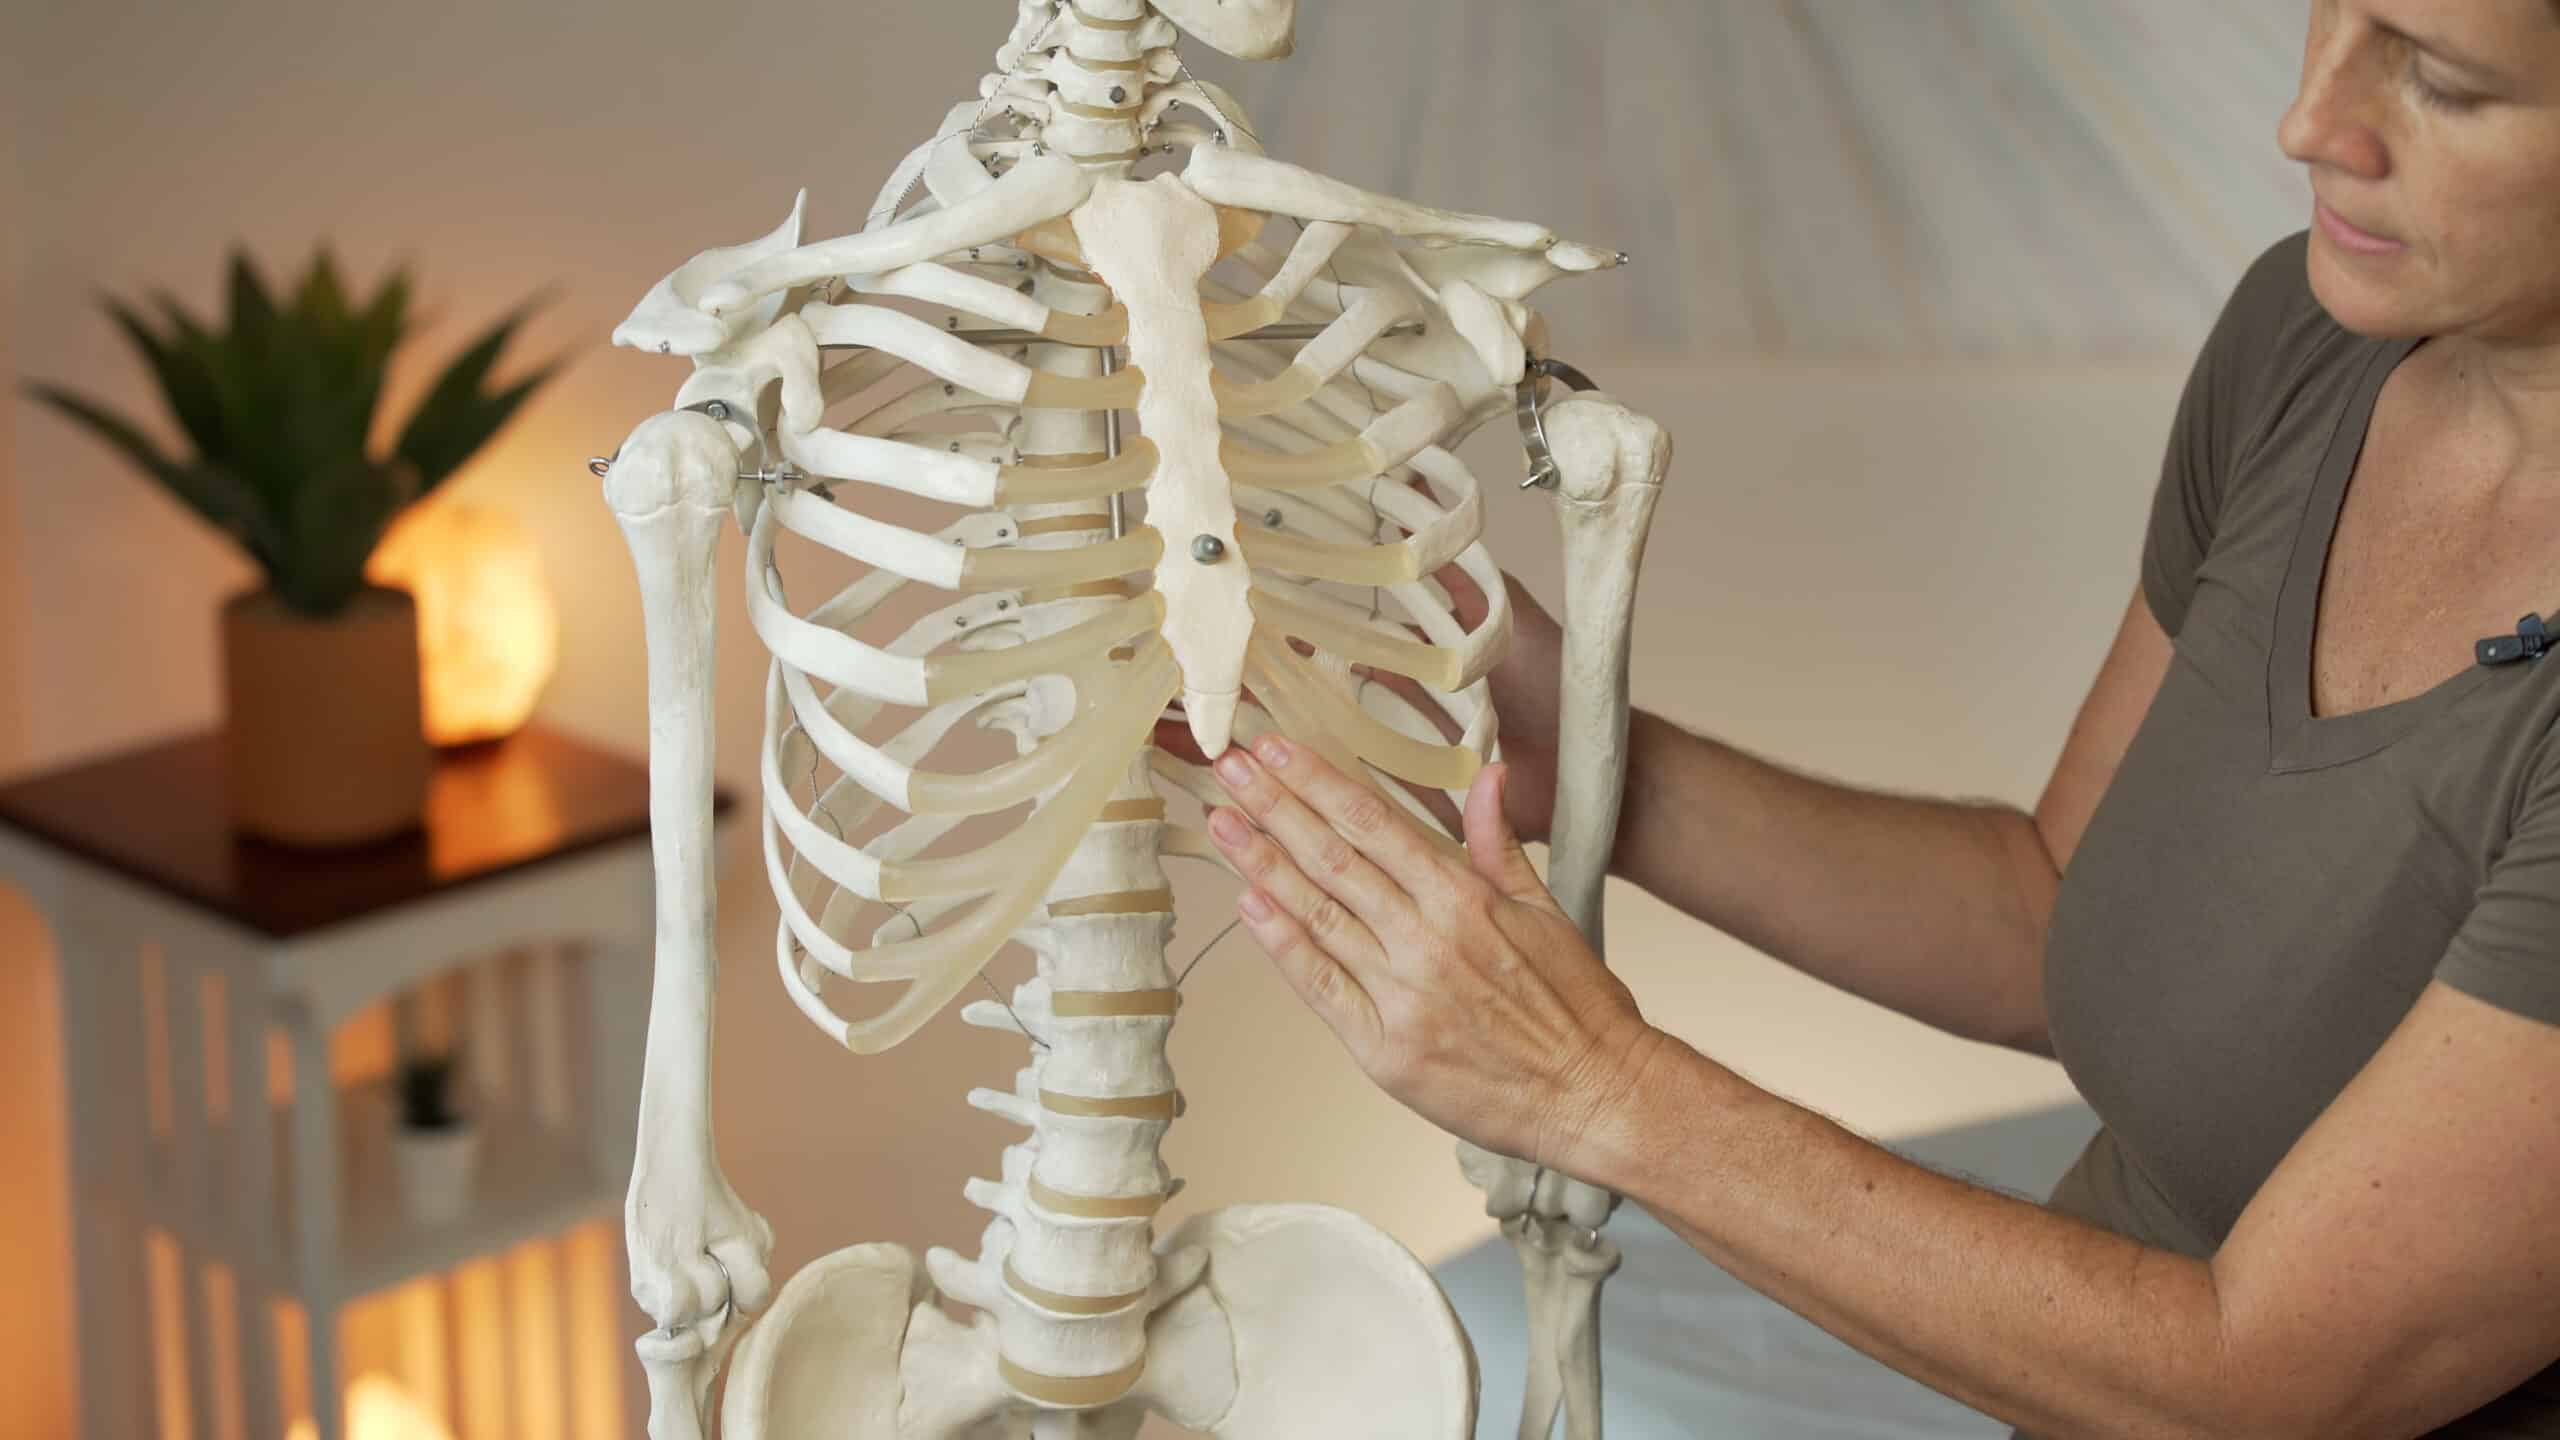 a massage therapist explains anatomy with a skeleton model